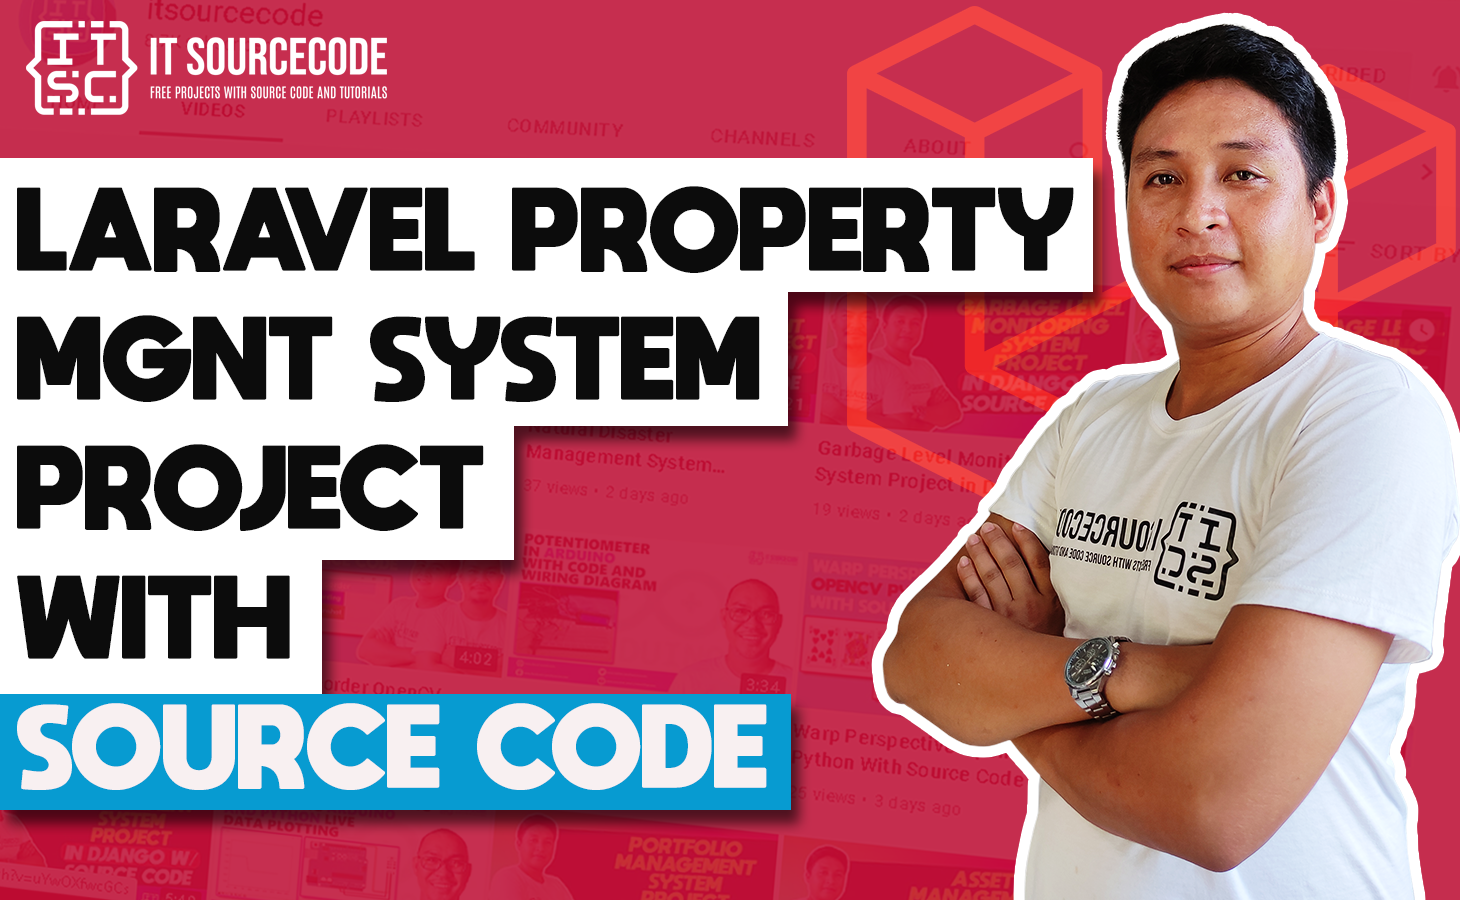 Laravel Property Management System Project with Source Code